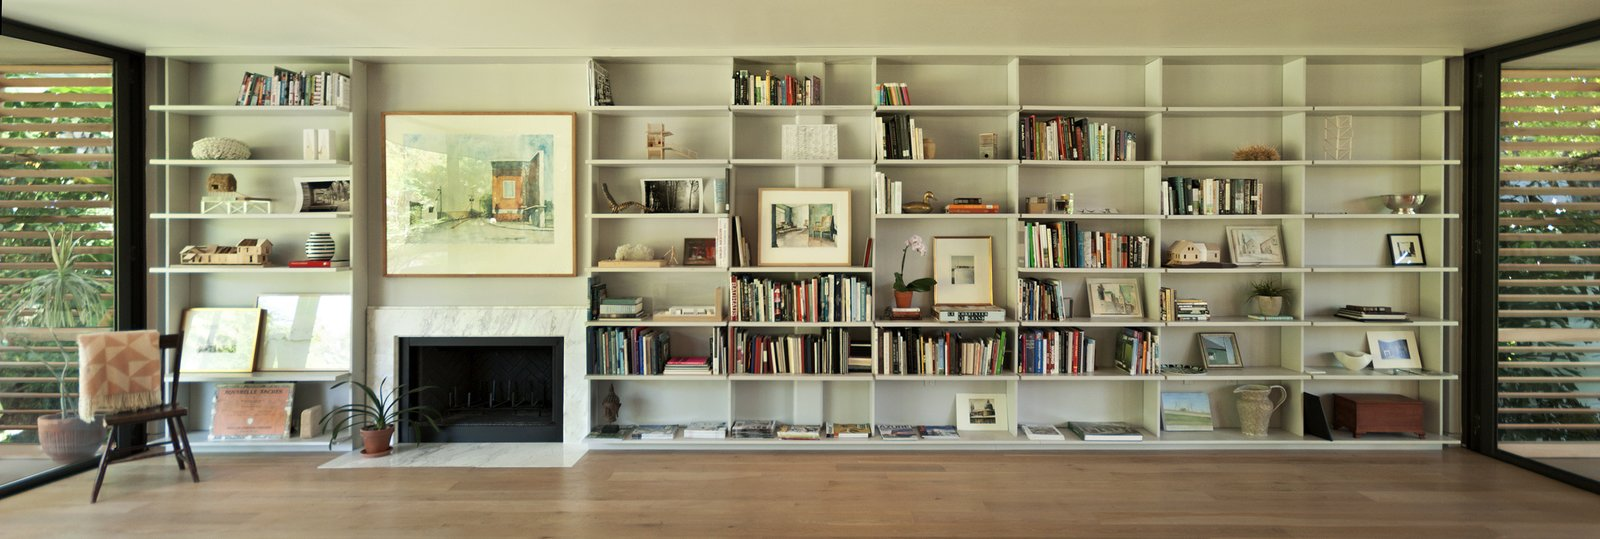 "In the living room, the Brillharts created a ""unified, simple and clean design"" that incorporated a bookcase and fireplace along the continuous 30-foot long anchor wall. The shelves are inset several inches away from the glass walls on either side. Each individual layer cantilevers outwards to create a floating effect that mirrors the way the house itself floats above the ground.  Brillhart House by Emma Janzen"